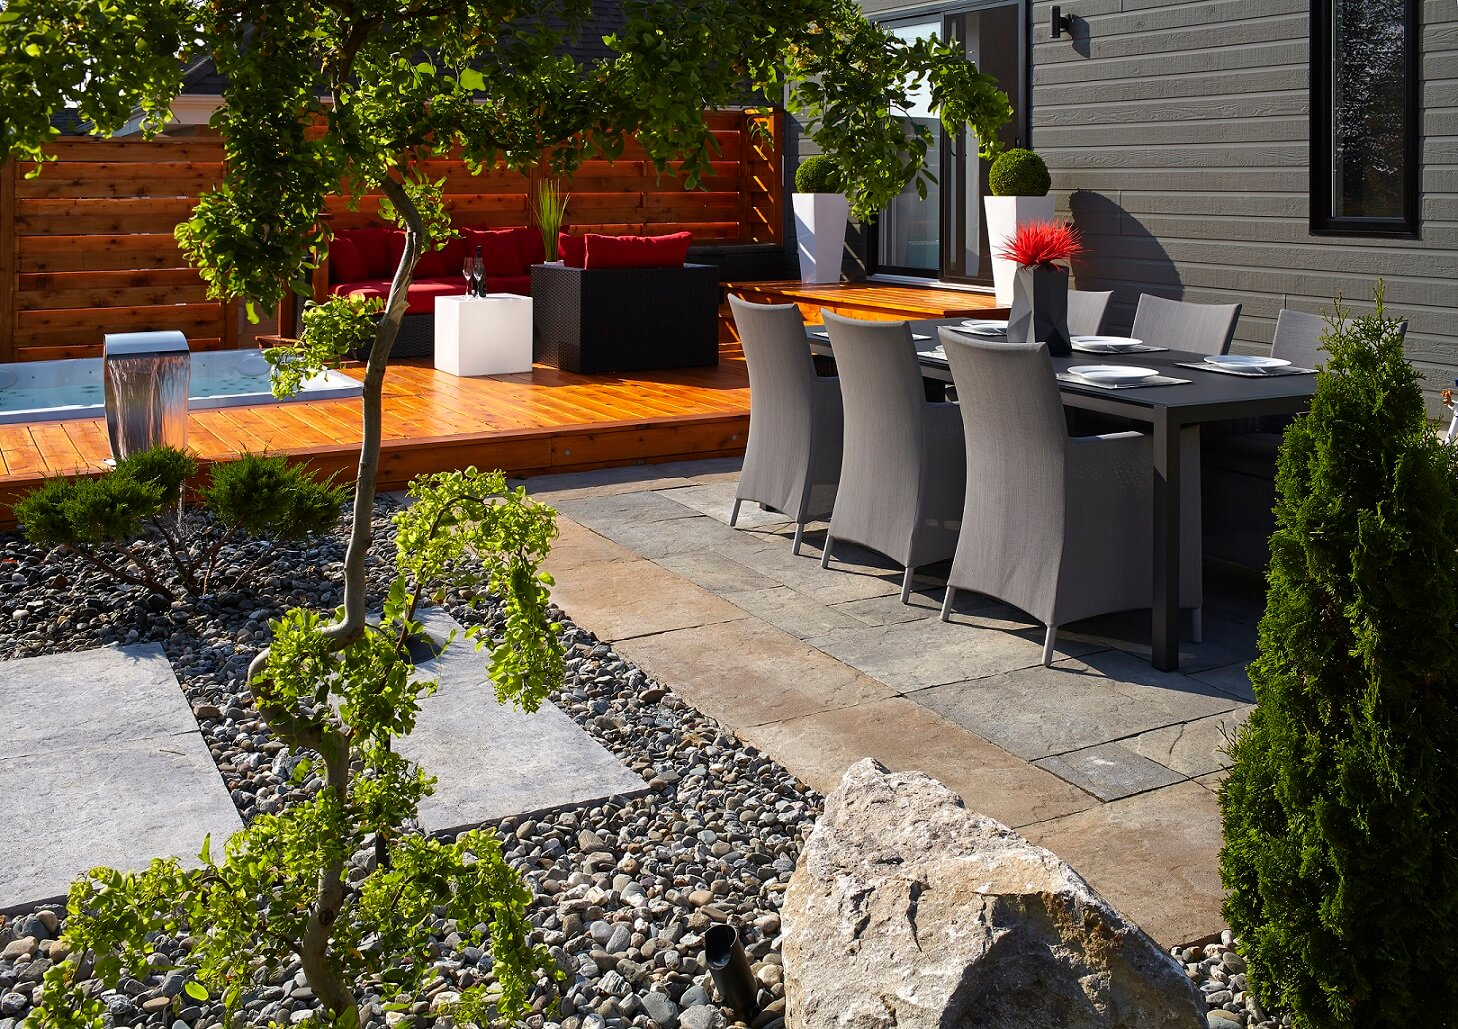 Ma onnex am nagement paysager on pinterest mondrian for Deco terrasse exterieur